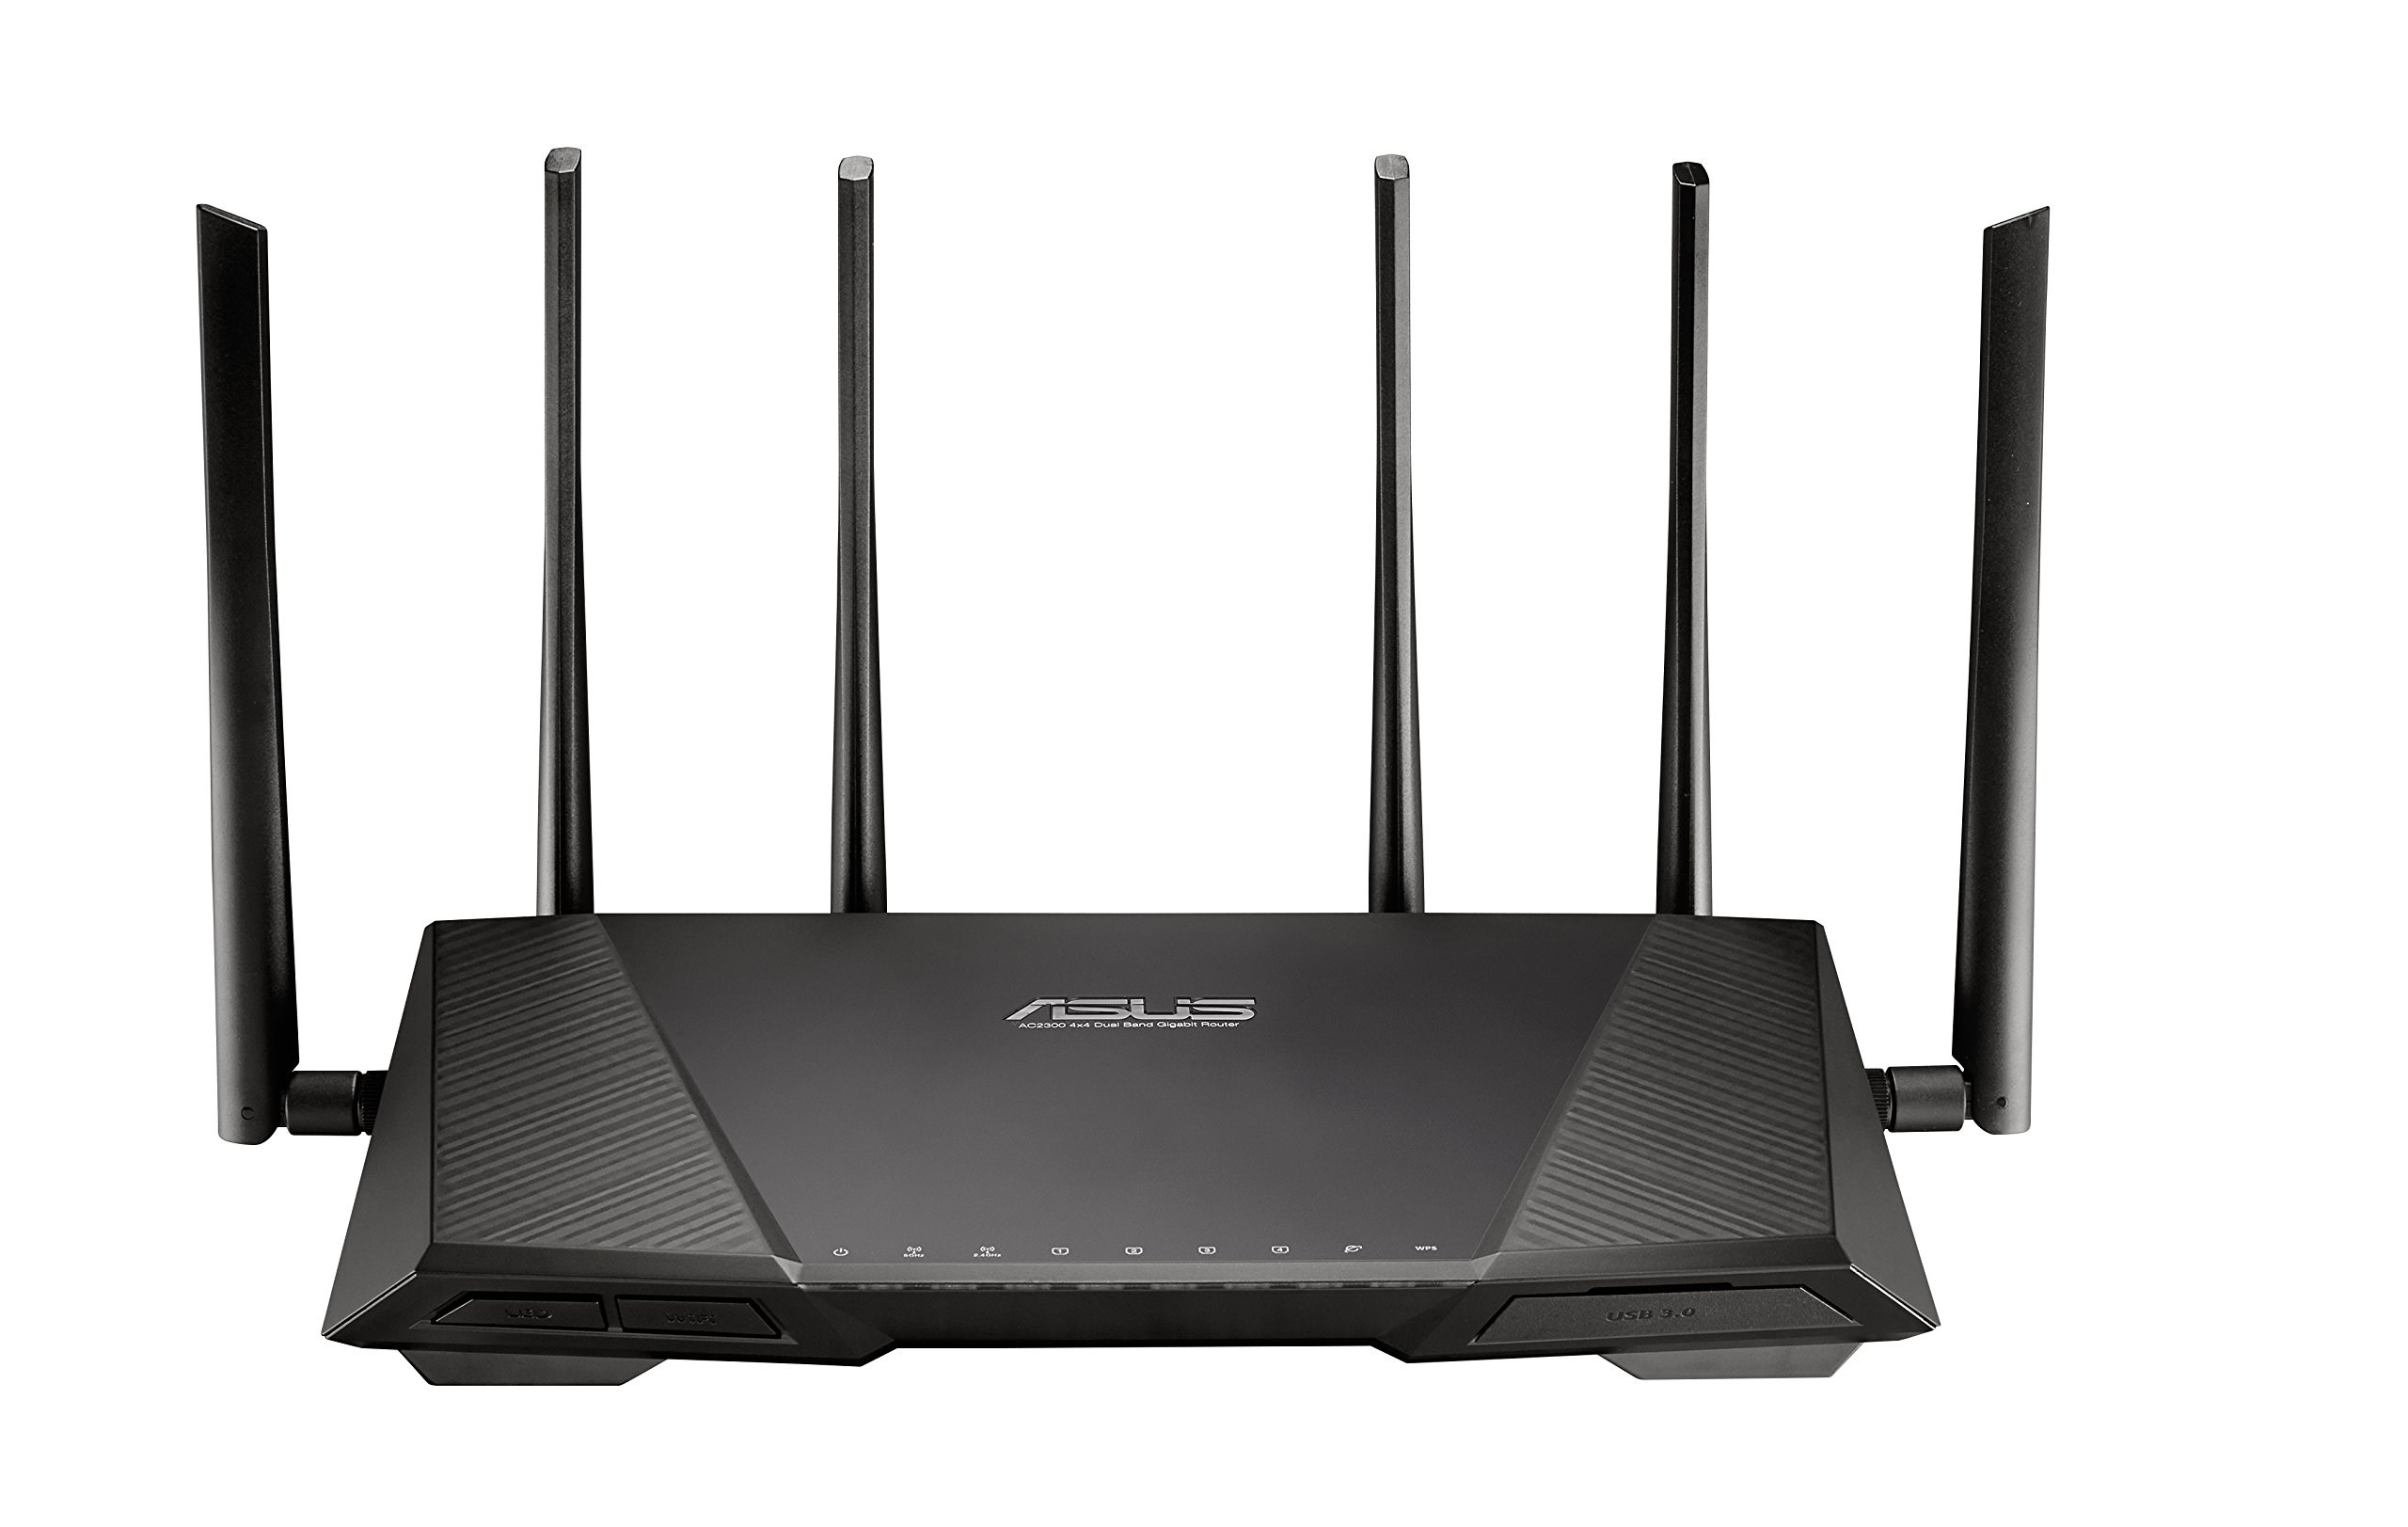 ASUS RT-AC3200 Tri-Band AC3200 Wireless Gigabit Router AiProtection